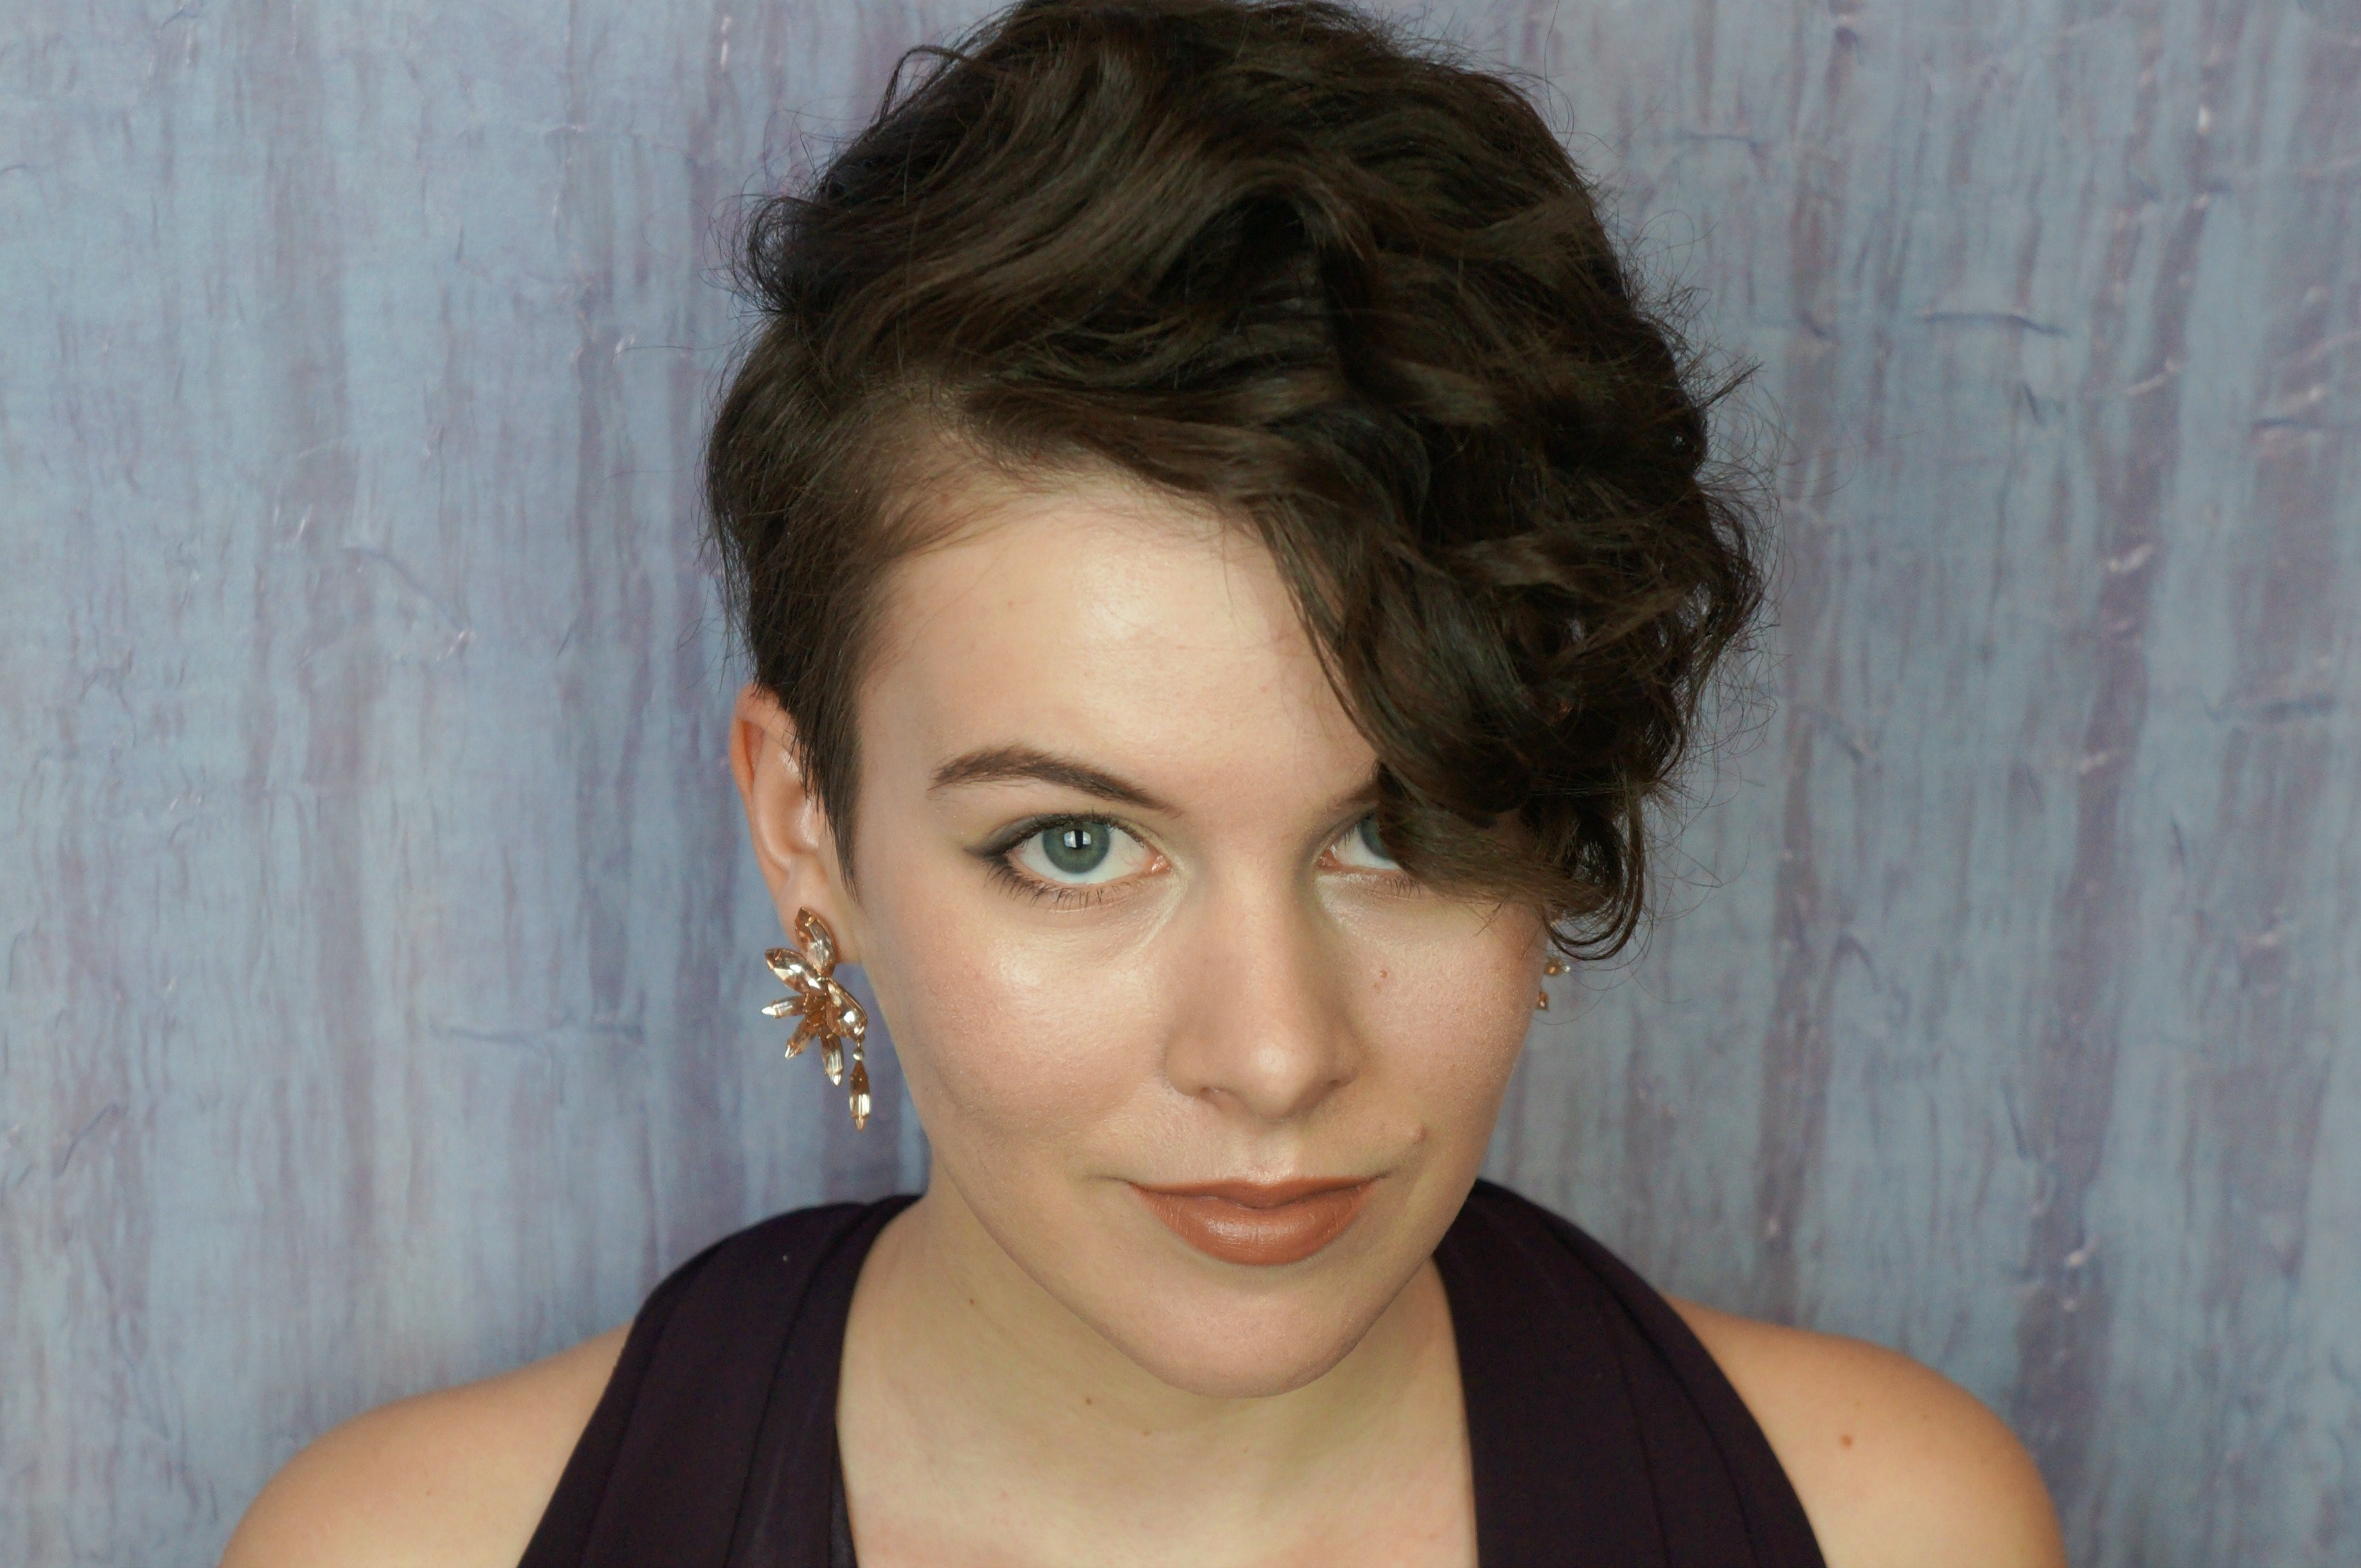 Groovy 4 Short Hairstyles For Prom That Prove Pixie Cuts Can Be Extremely Short Hairstyles Gunalazisus